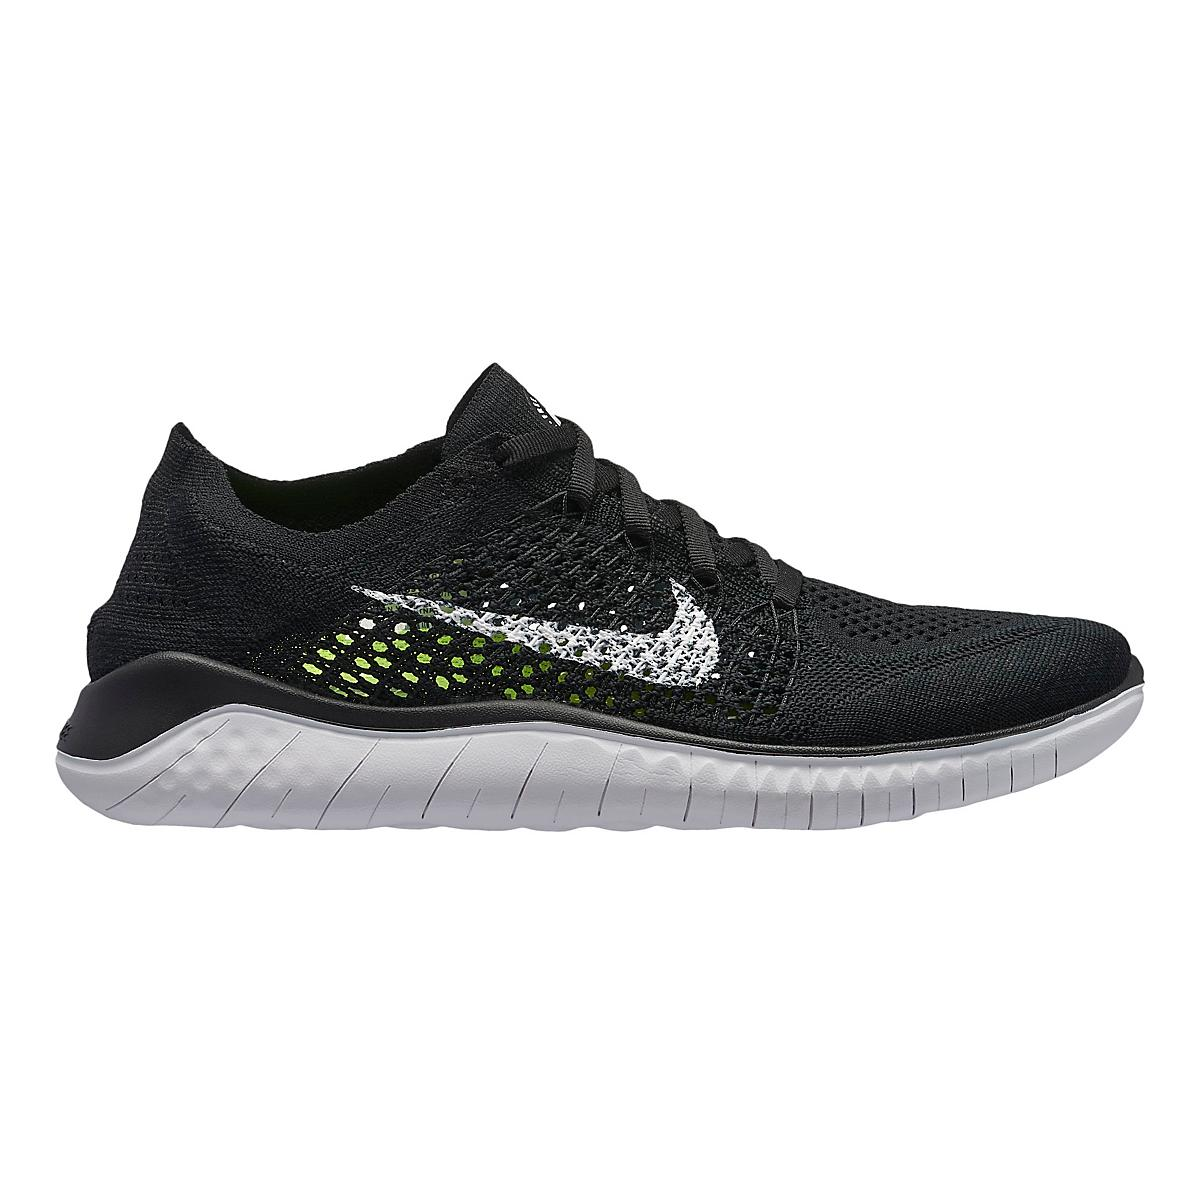 9a395c279f0f Womens Nike Free RN Flyknit 2018 Running Shoe at Road Runner Sports